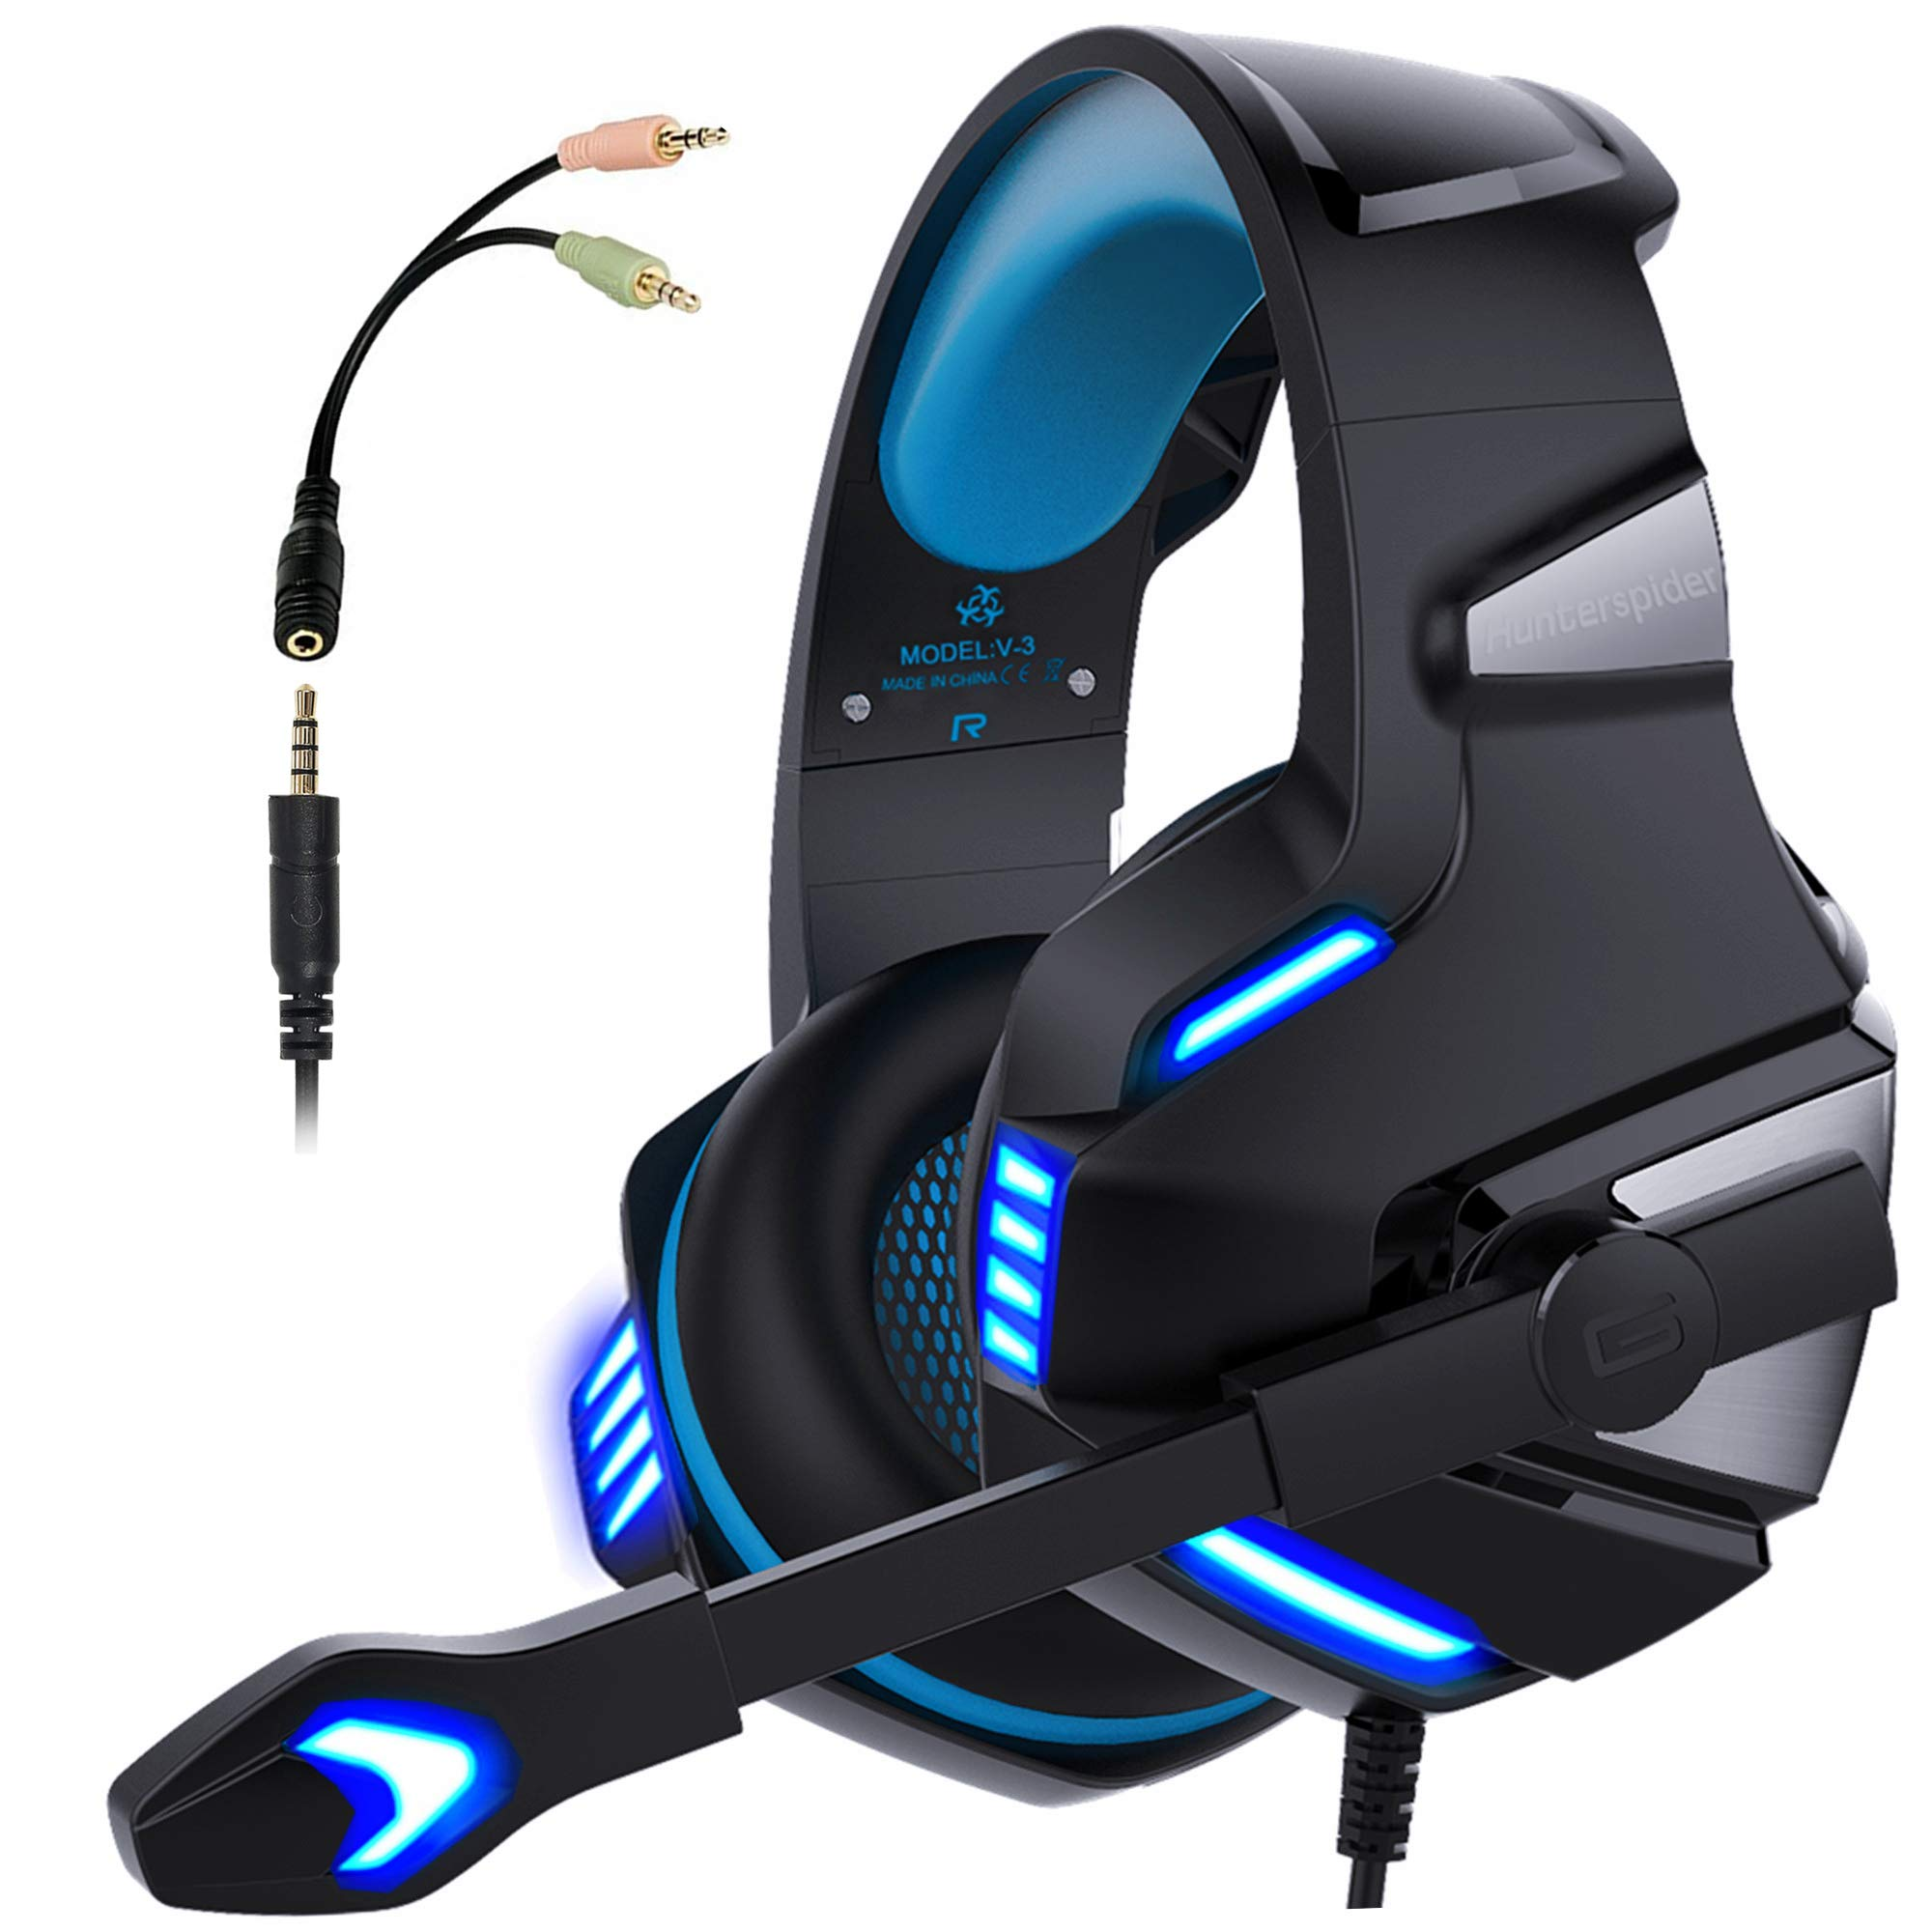 micolindun gaming headset for xbox one. Black Bedroom Furniture Sets. Home Design Ideas